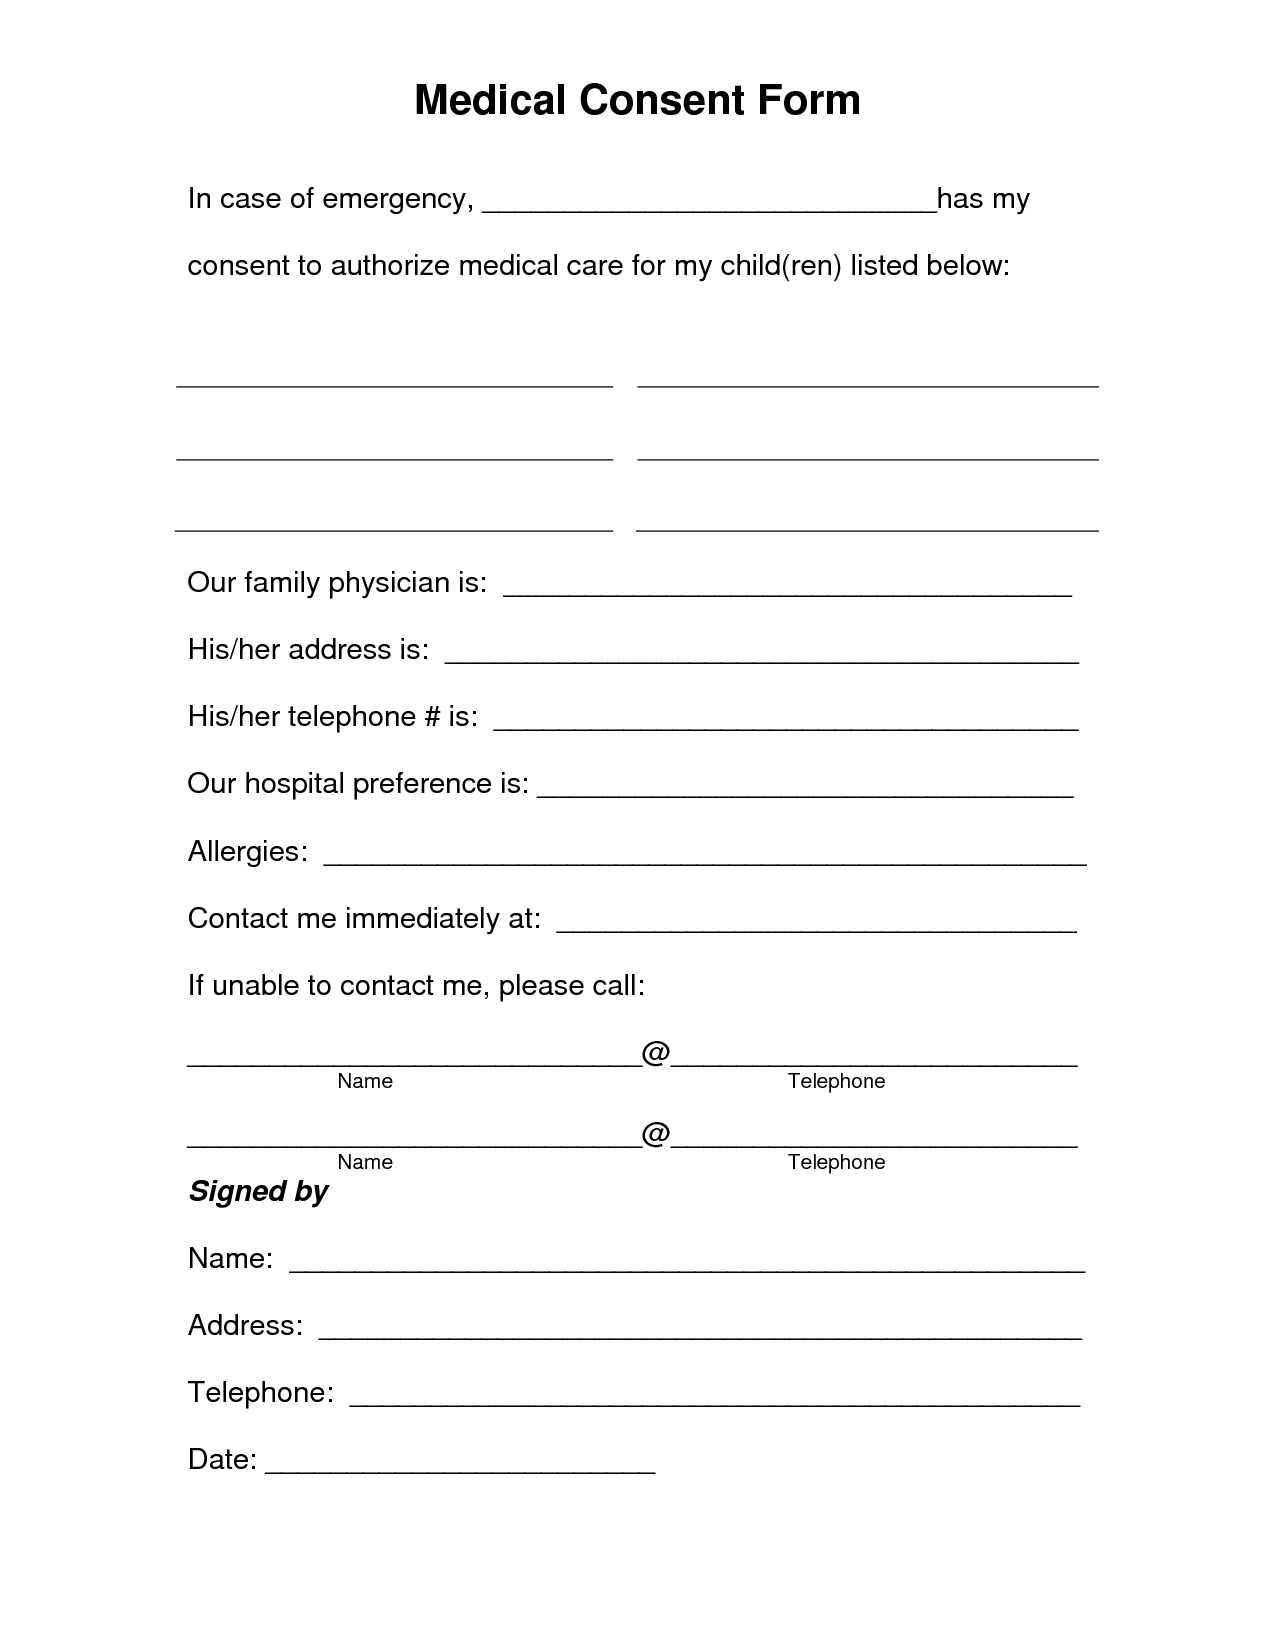 Free printable medical consent form free medical consent form free printable medical consent form free medical consent form spiritdancerdesigns Images